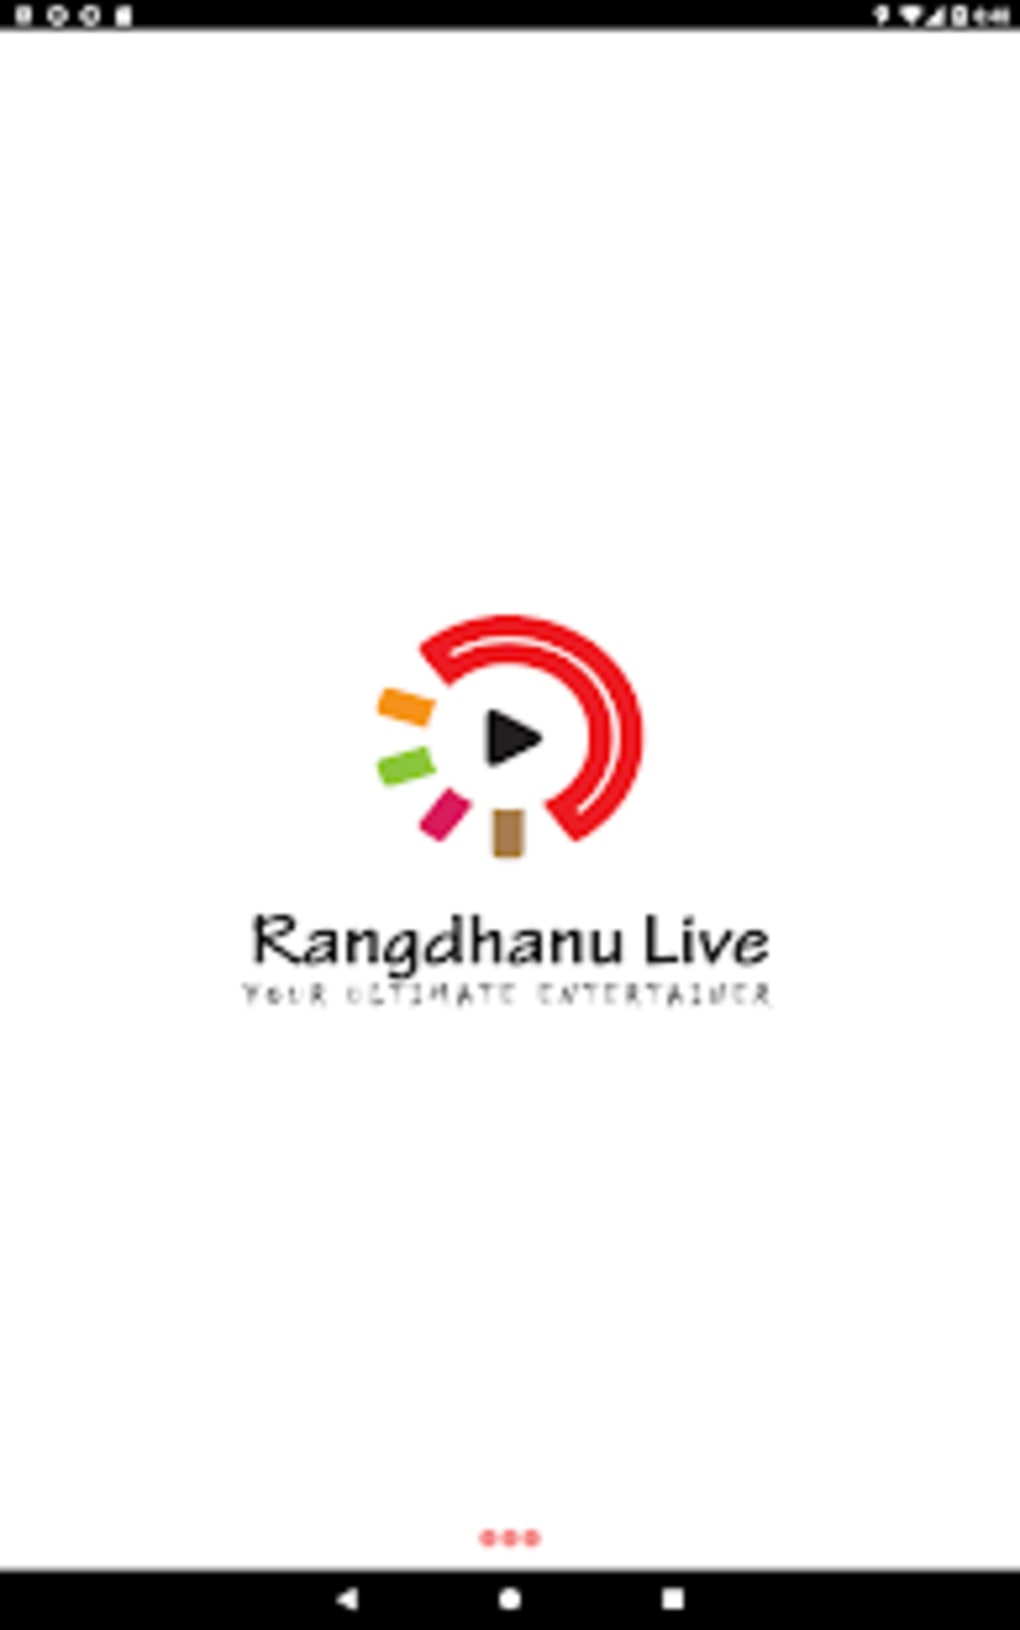 Rangdhanu Live for Android - Download